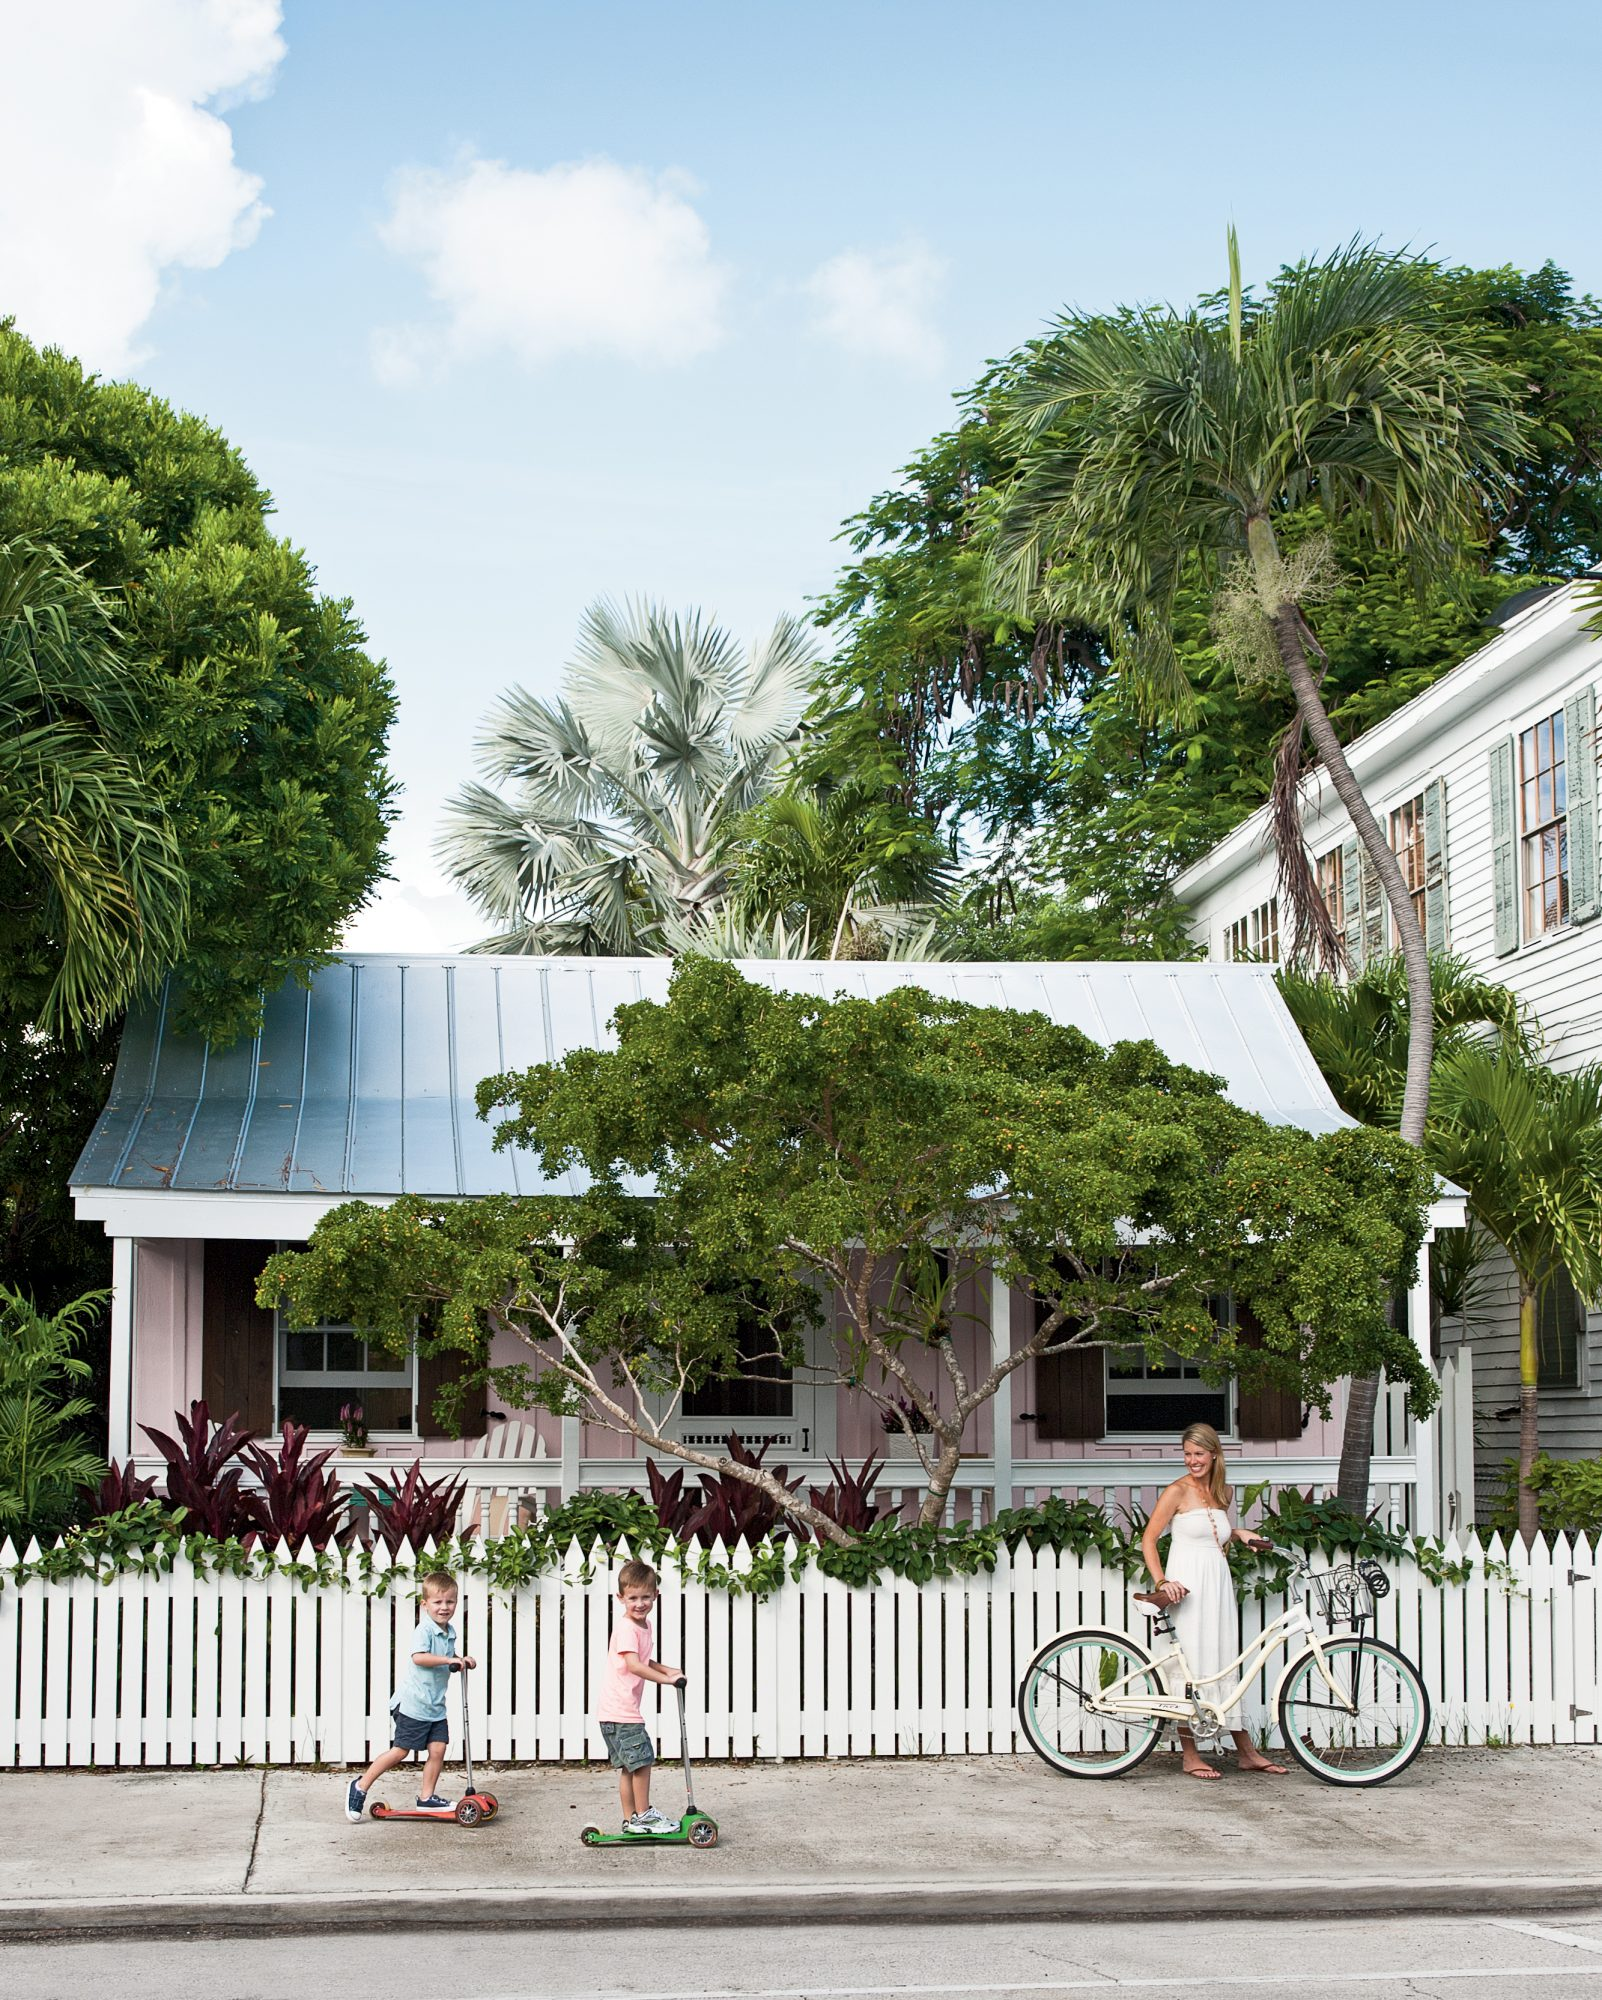 The Style: This 800-square-foot, 19th-century cottage in Key West's Old Town neighborhood is as classic as they come, with a low-slung tin roof, front porch, and white picket fence.